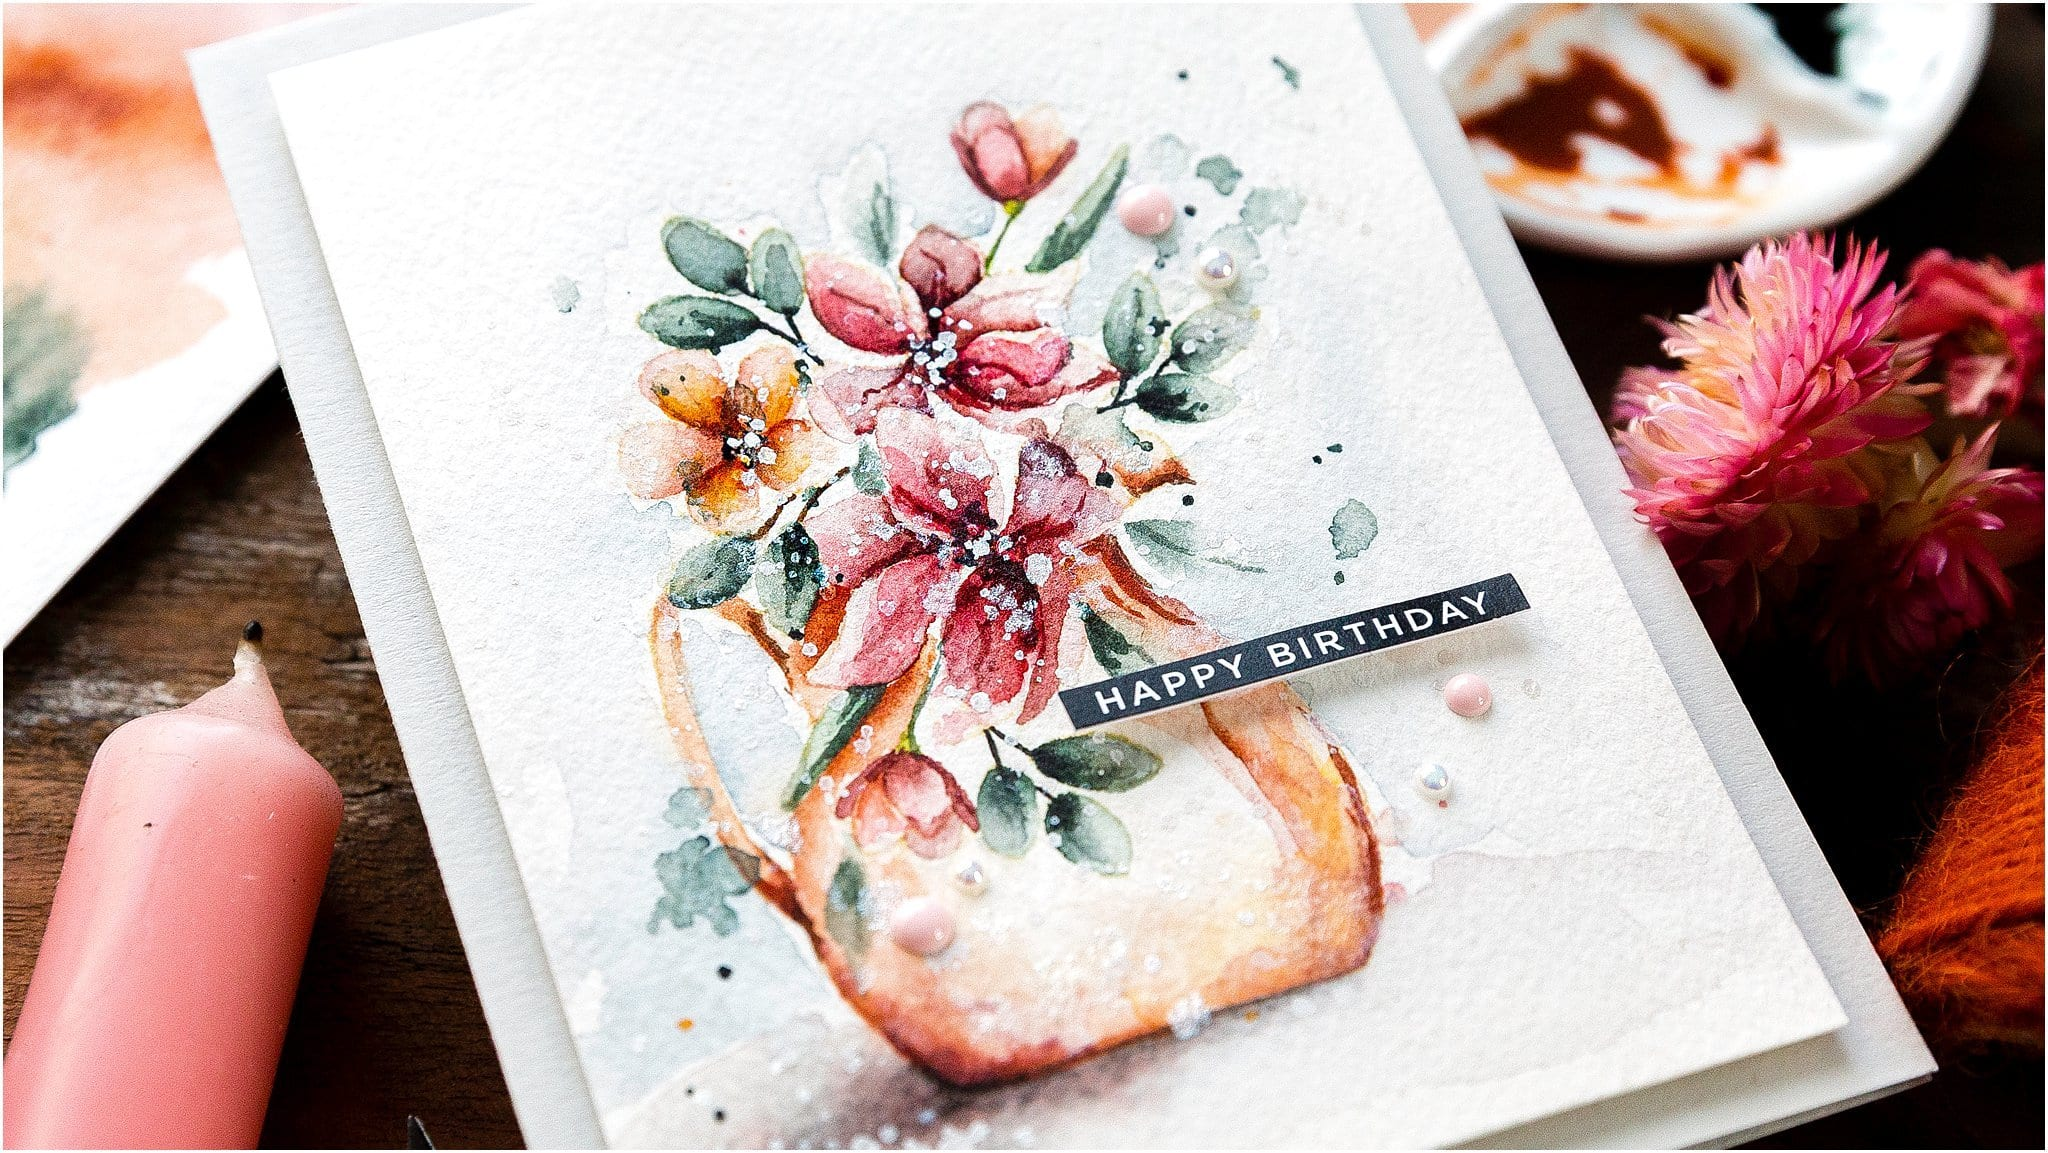 Video tutorial - how to loosely watercolour flowers from stamped images. Handmade card by Debby Hughes #debbyhughes #limedoodledesign #handmadecards #cardmaking #cardmakingideas #cardmakingtechniques  #cardmakingtutorials #handmadecardideas #simonsaysstamp